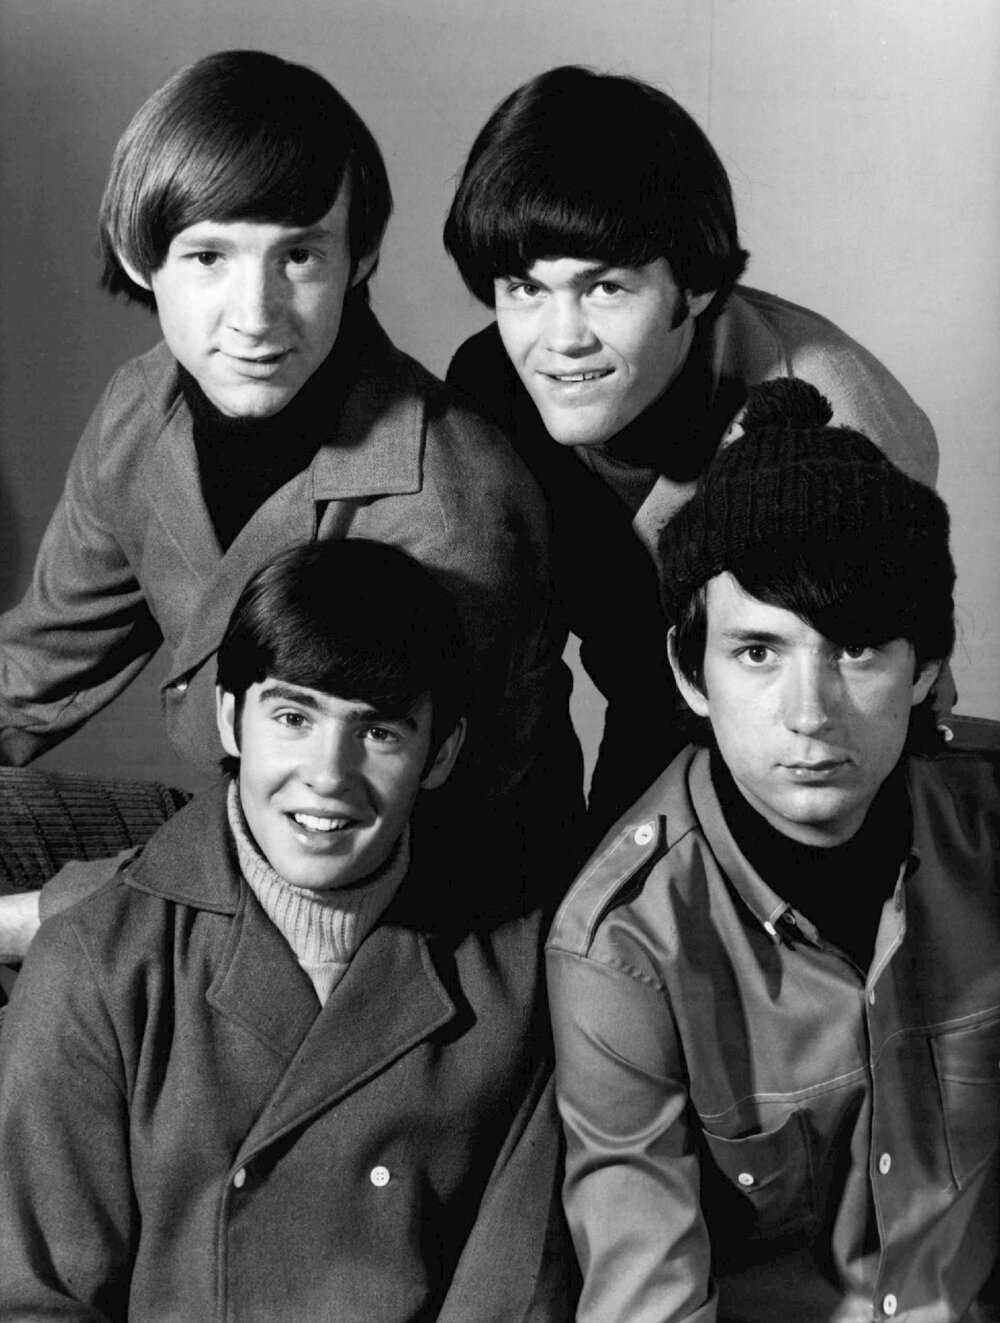 The Monkees in 1966 (Nesmith at bottom right)